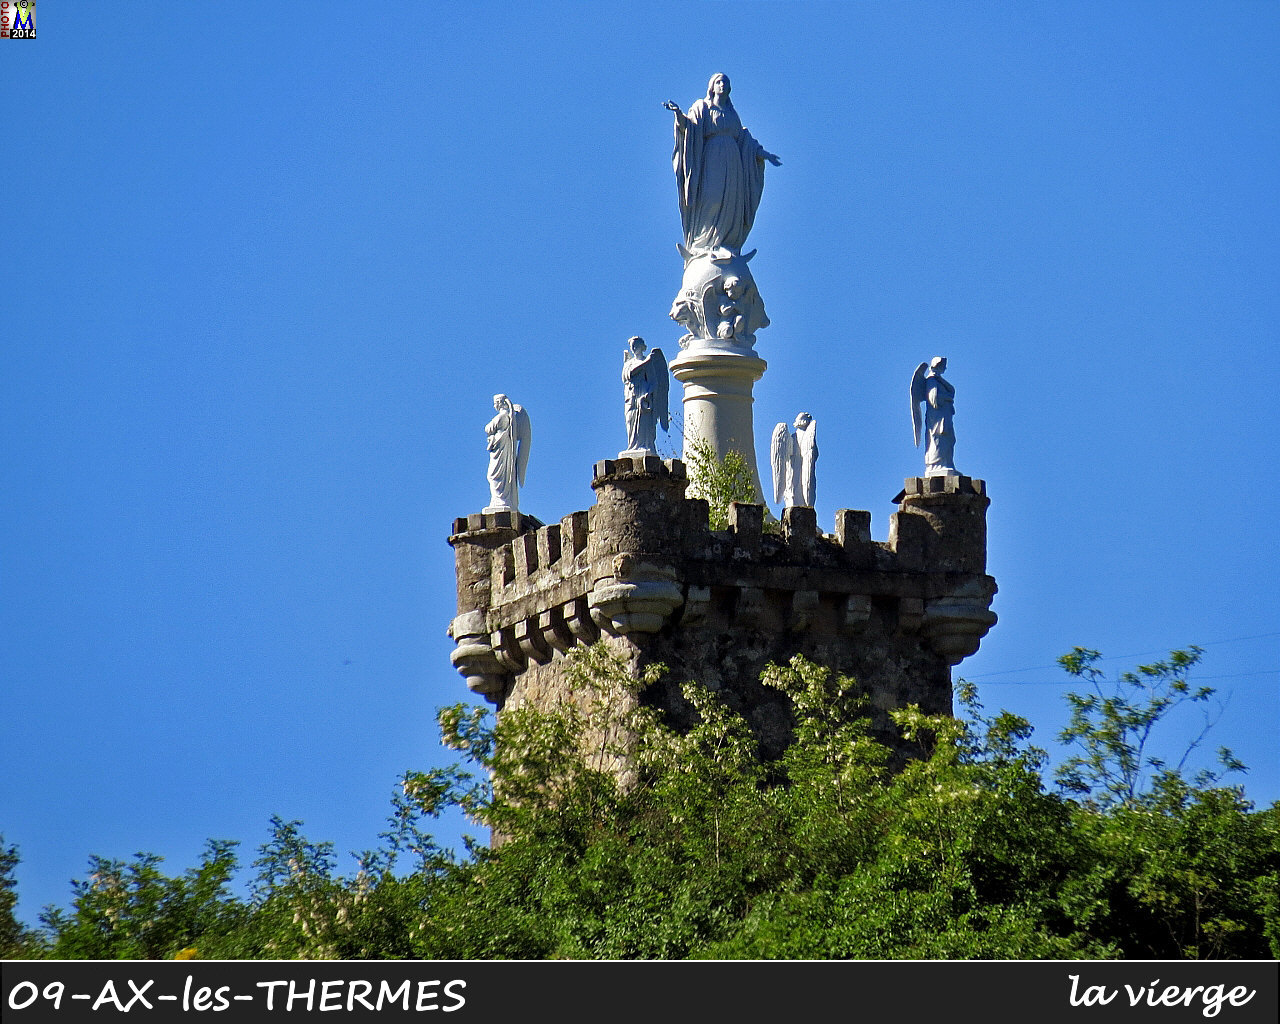 09AX-THERMES_vierge_100.jpg